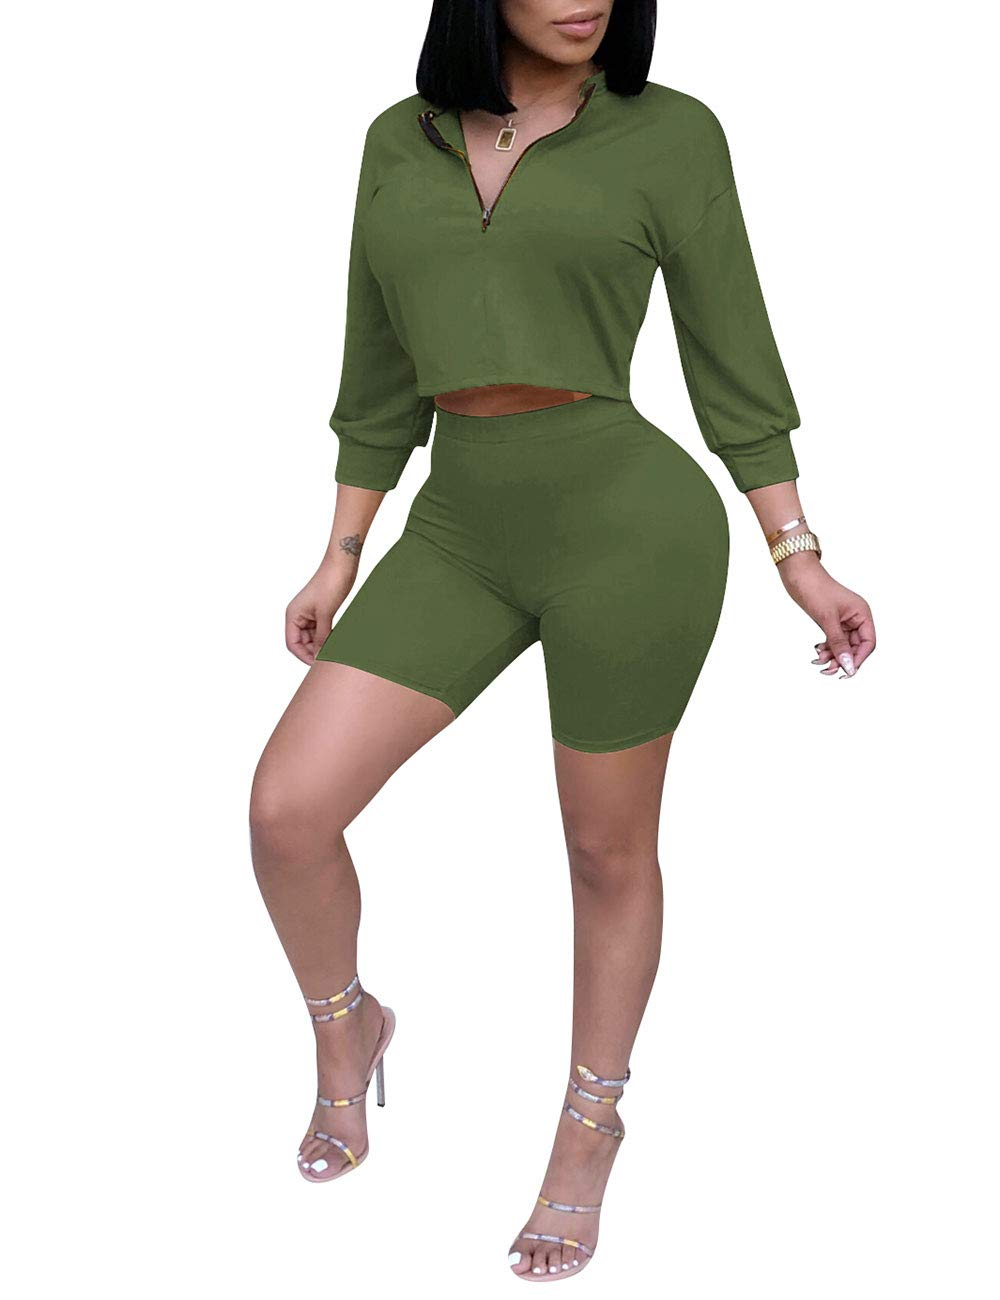 Women Bodycon 2 Piece Shorts Set 3/4 Sleeve Crop Tops and Short Pants Club Outfits Green M